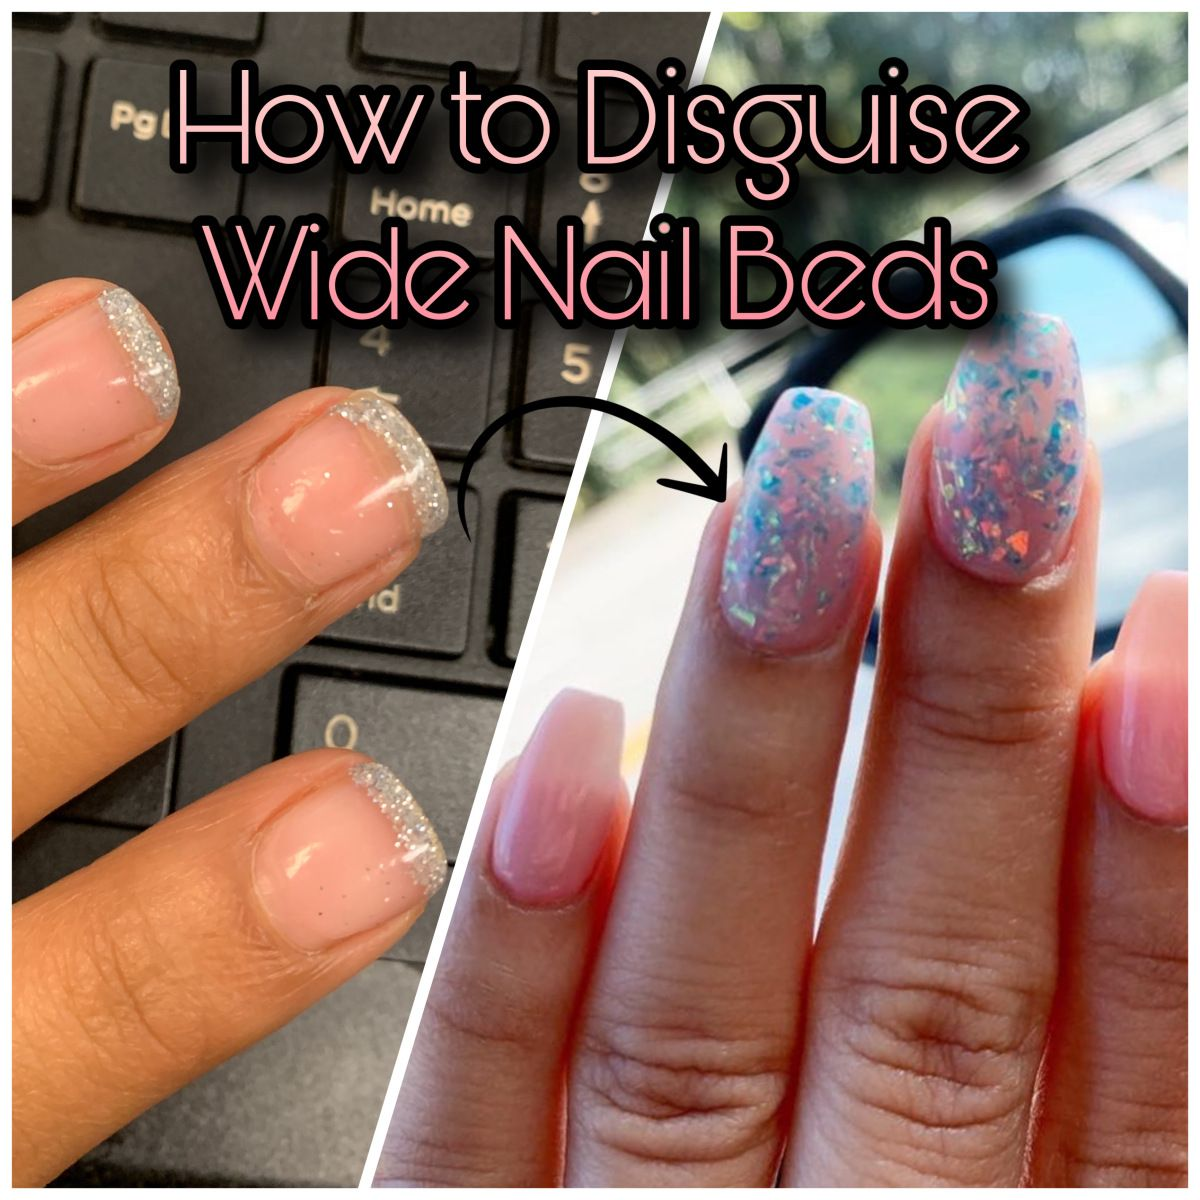 How To Disguise Wide Nail Beds Nail Dipaholic In 2020 Wide Nails Acrylic Nail Tips Short Nail Bed